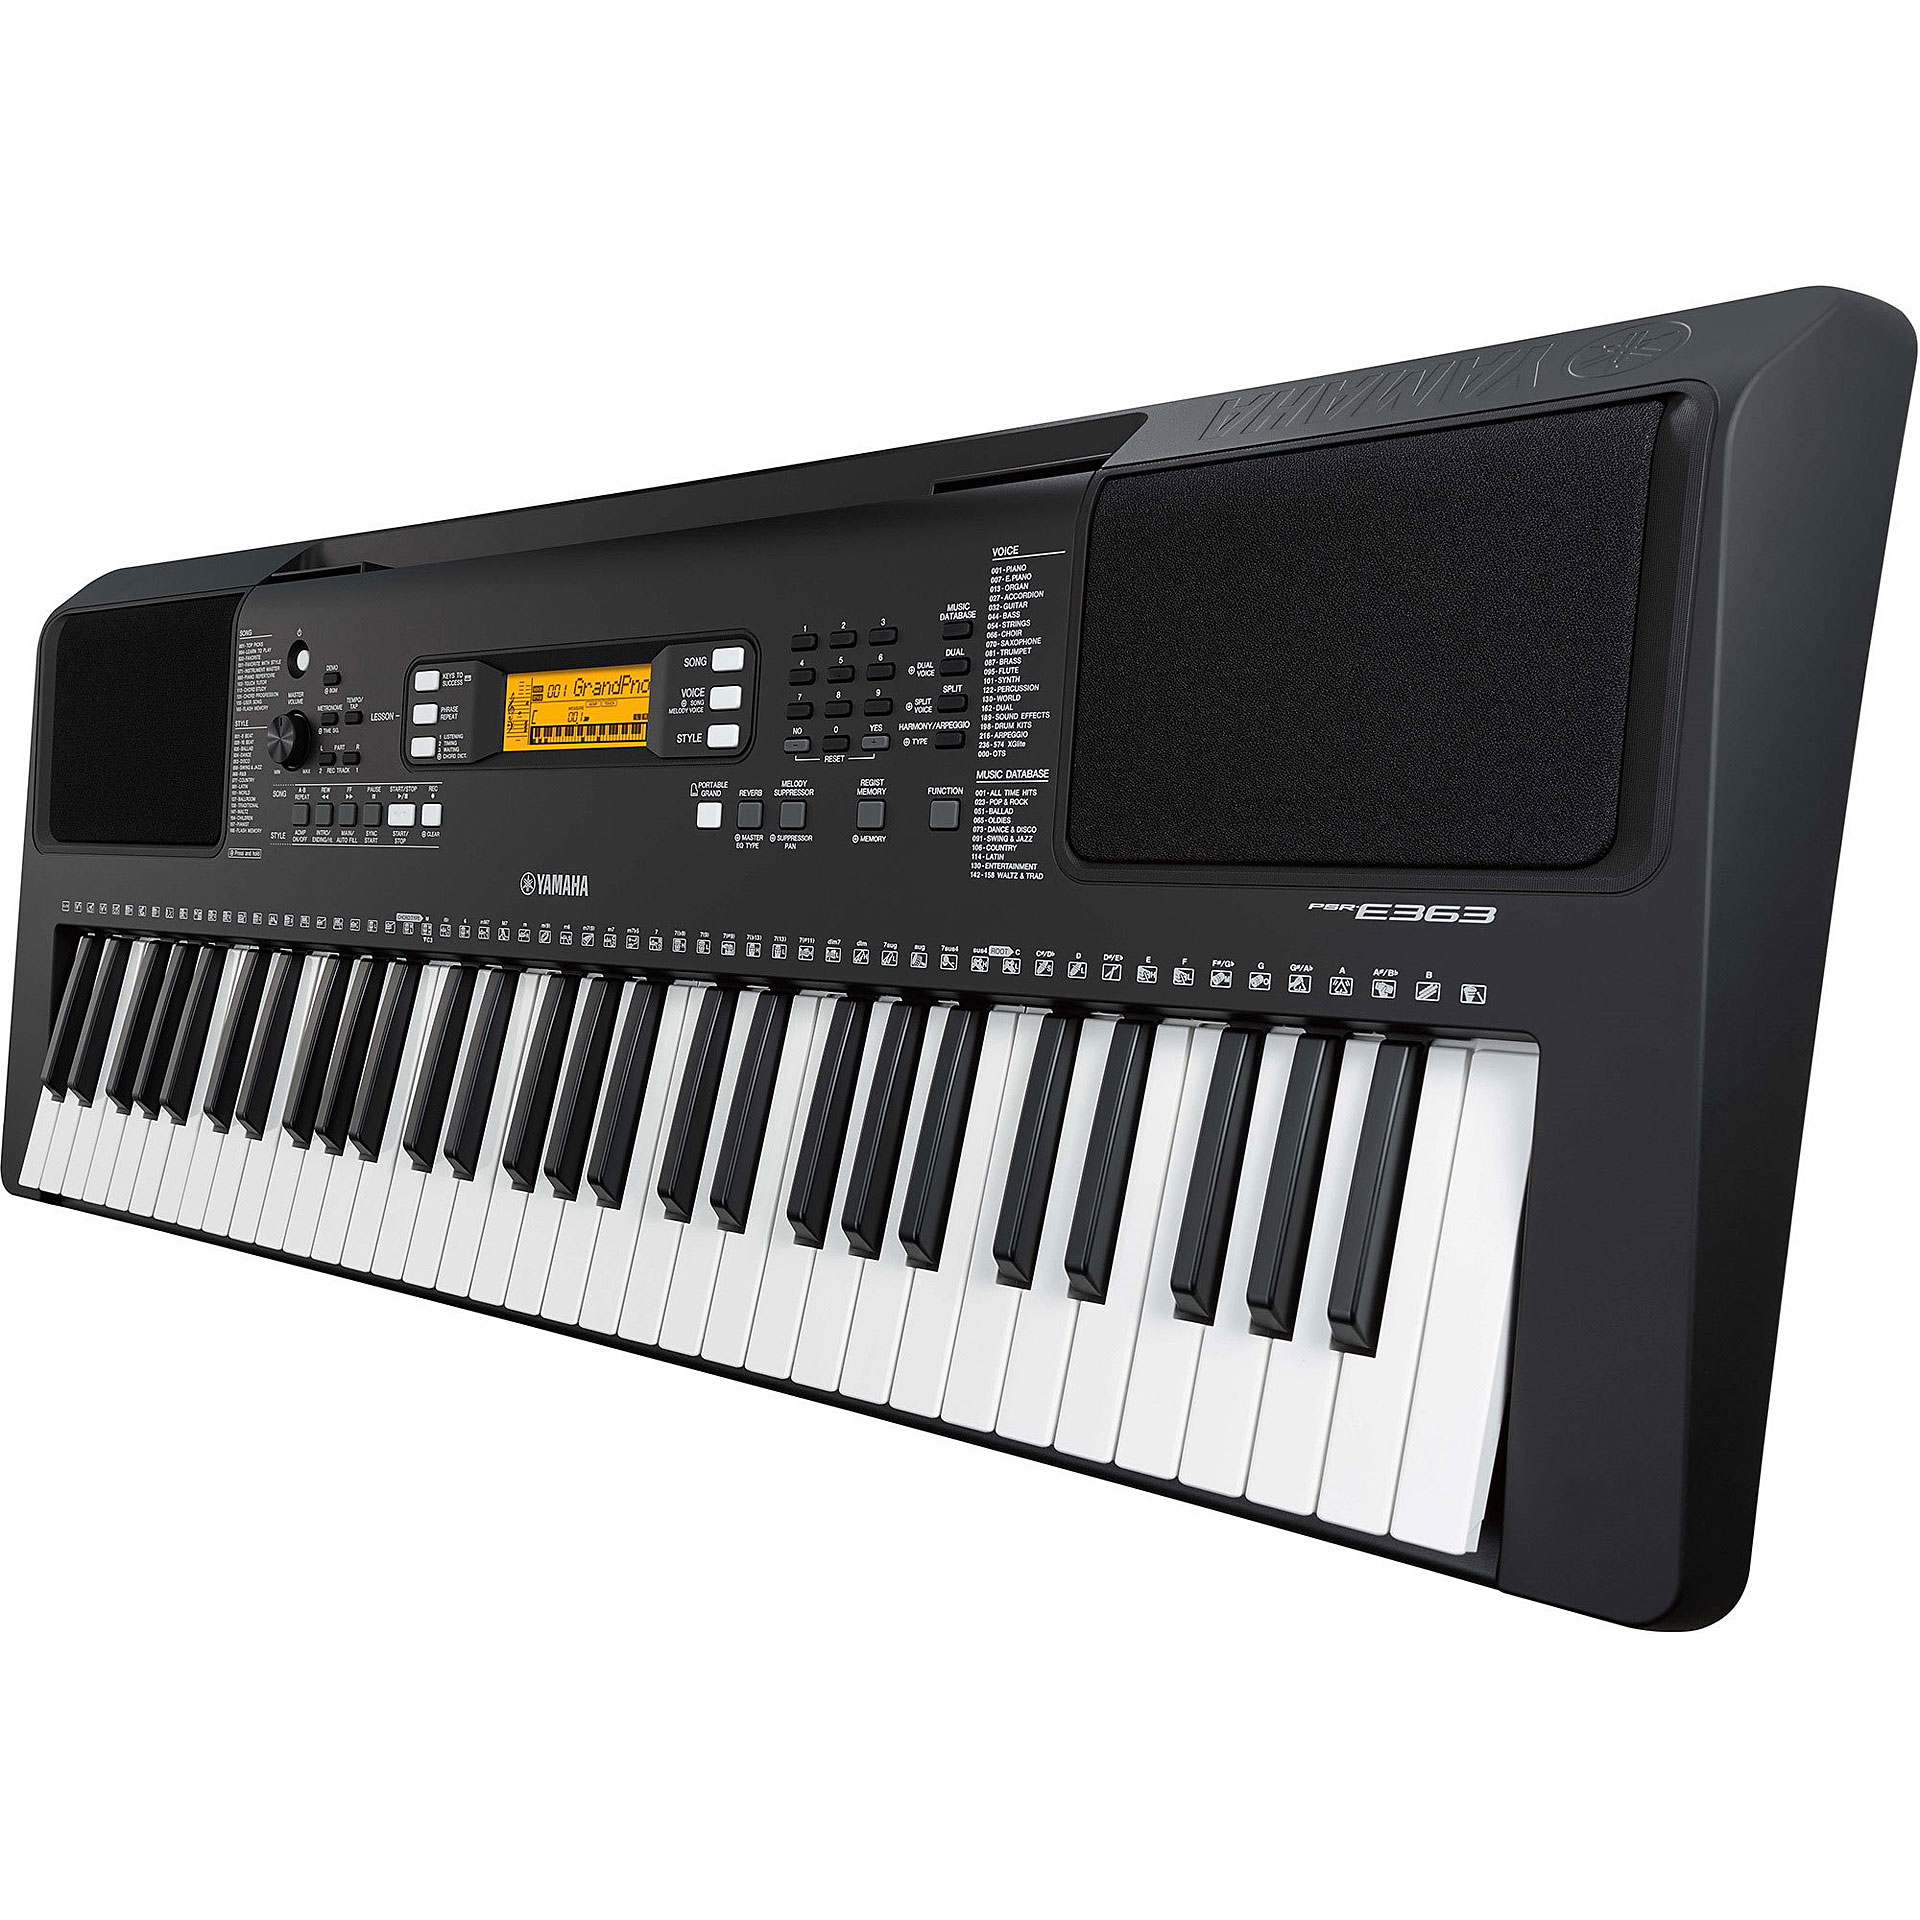 yamaha psr e363 keyboard. Black Bedroom Furniture Sets. Home Design Ideas